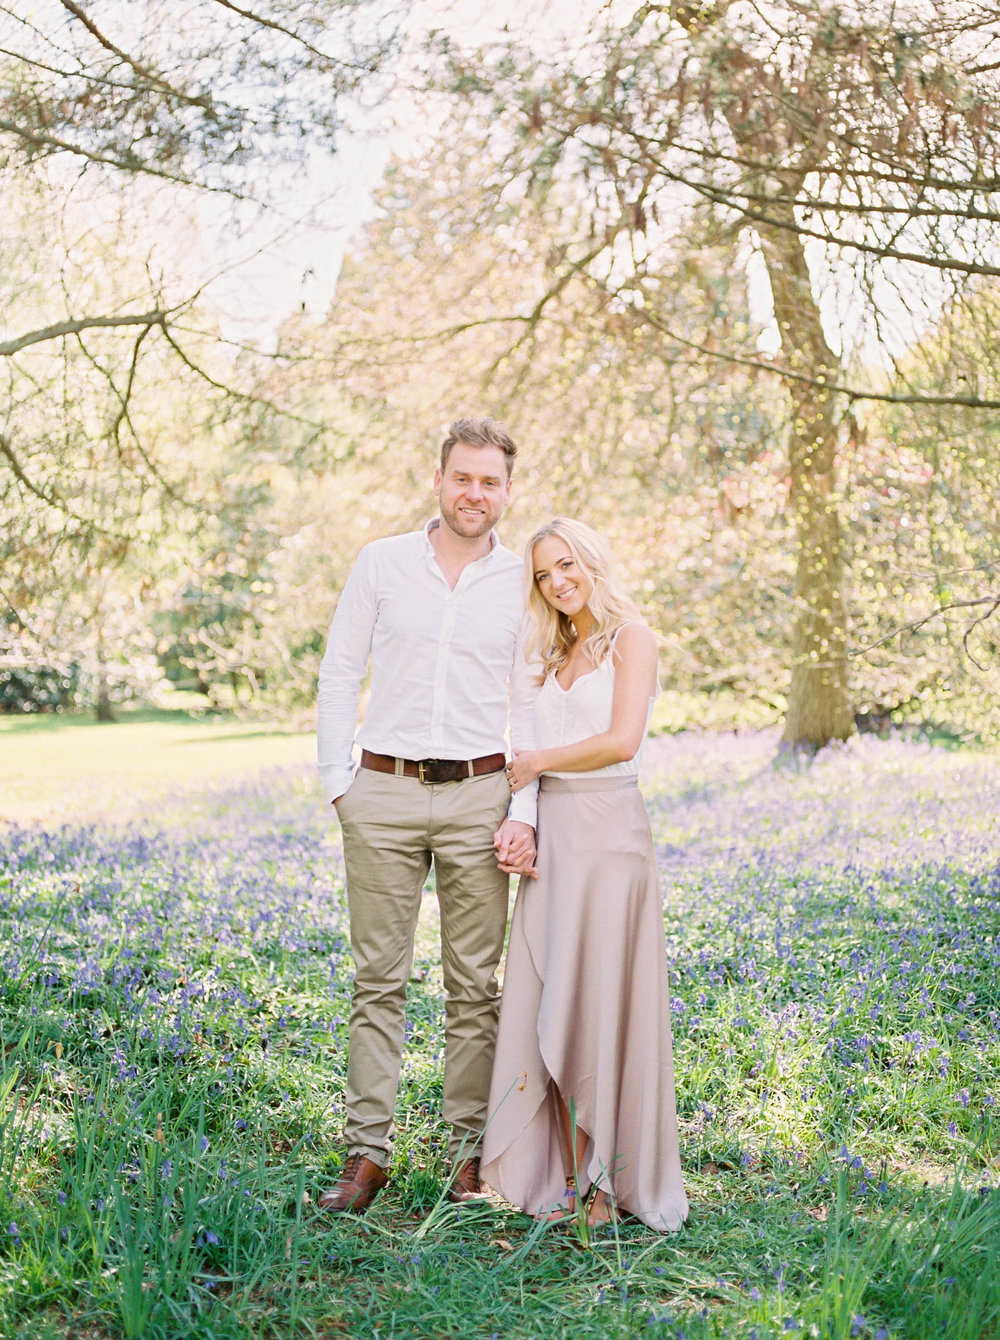 Amy O'Boyle Photography- Destination & UK Fine Art Film Wedding Photographer- Sheffield Park Garden National Trust Spring Engagement Shoot-14.jpg